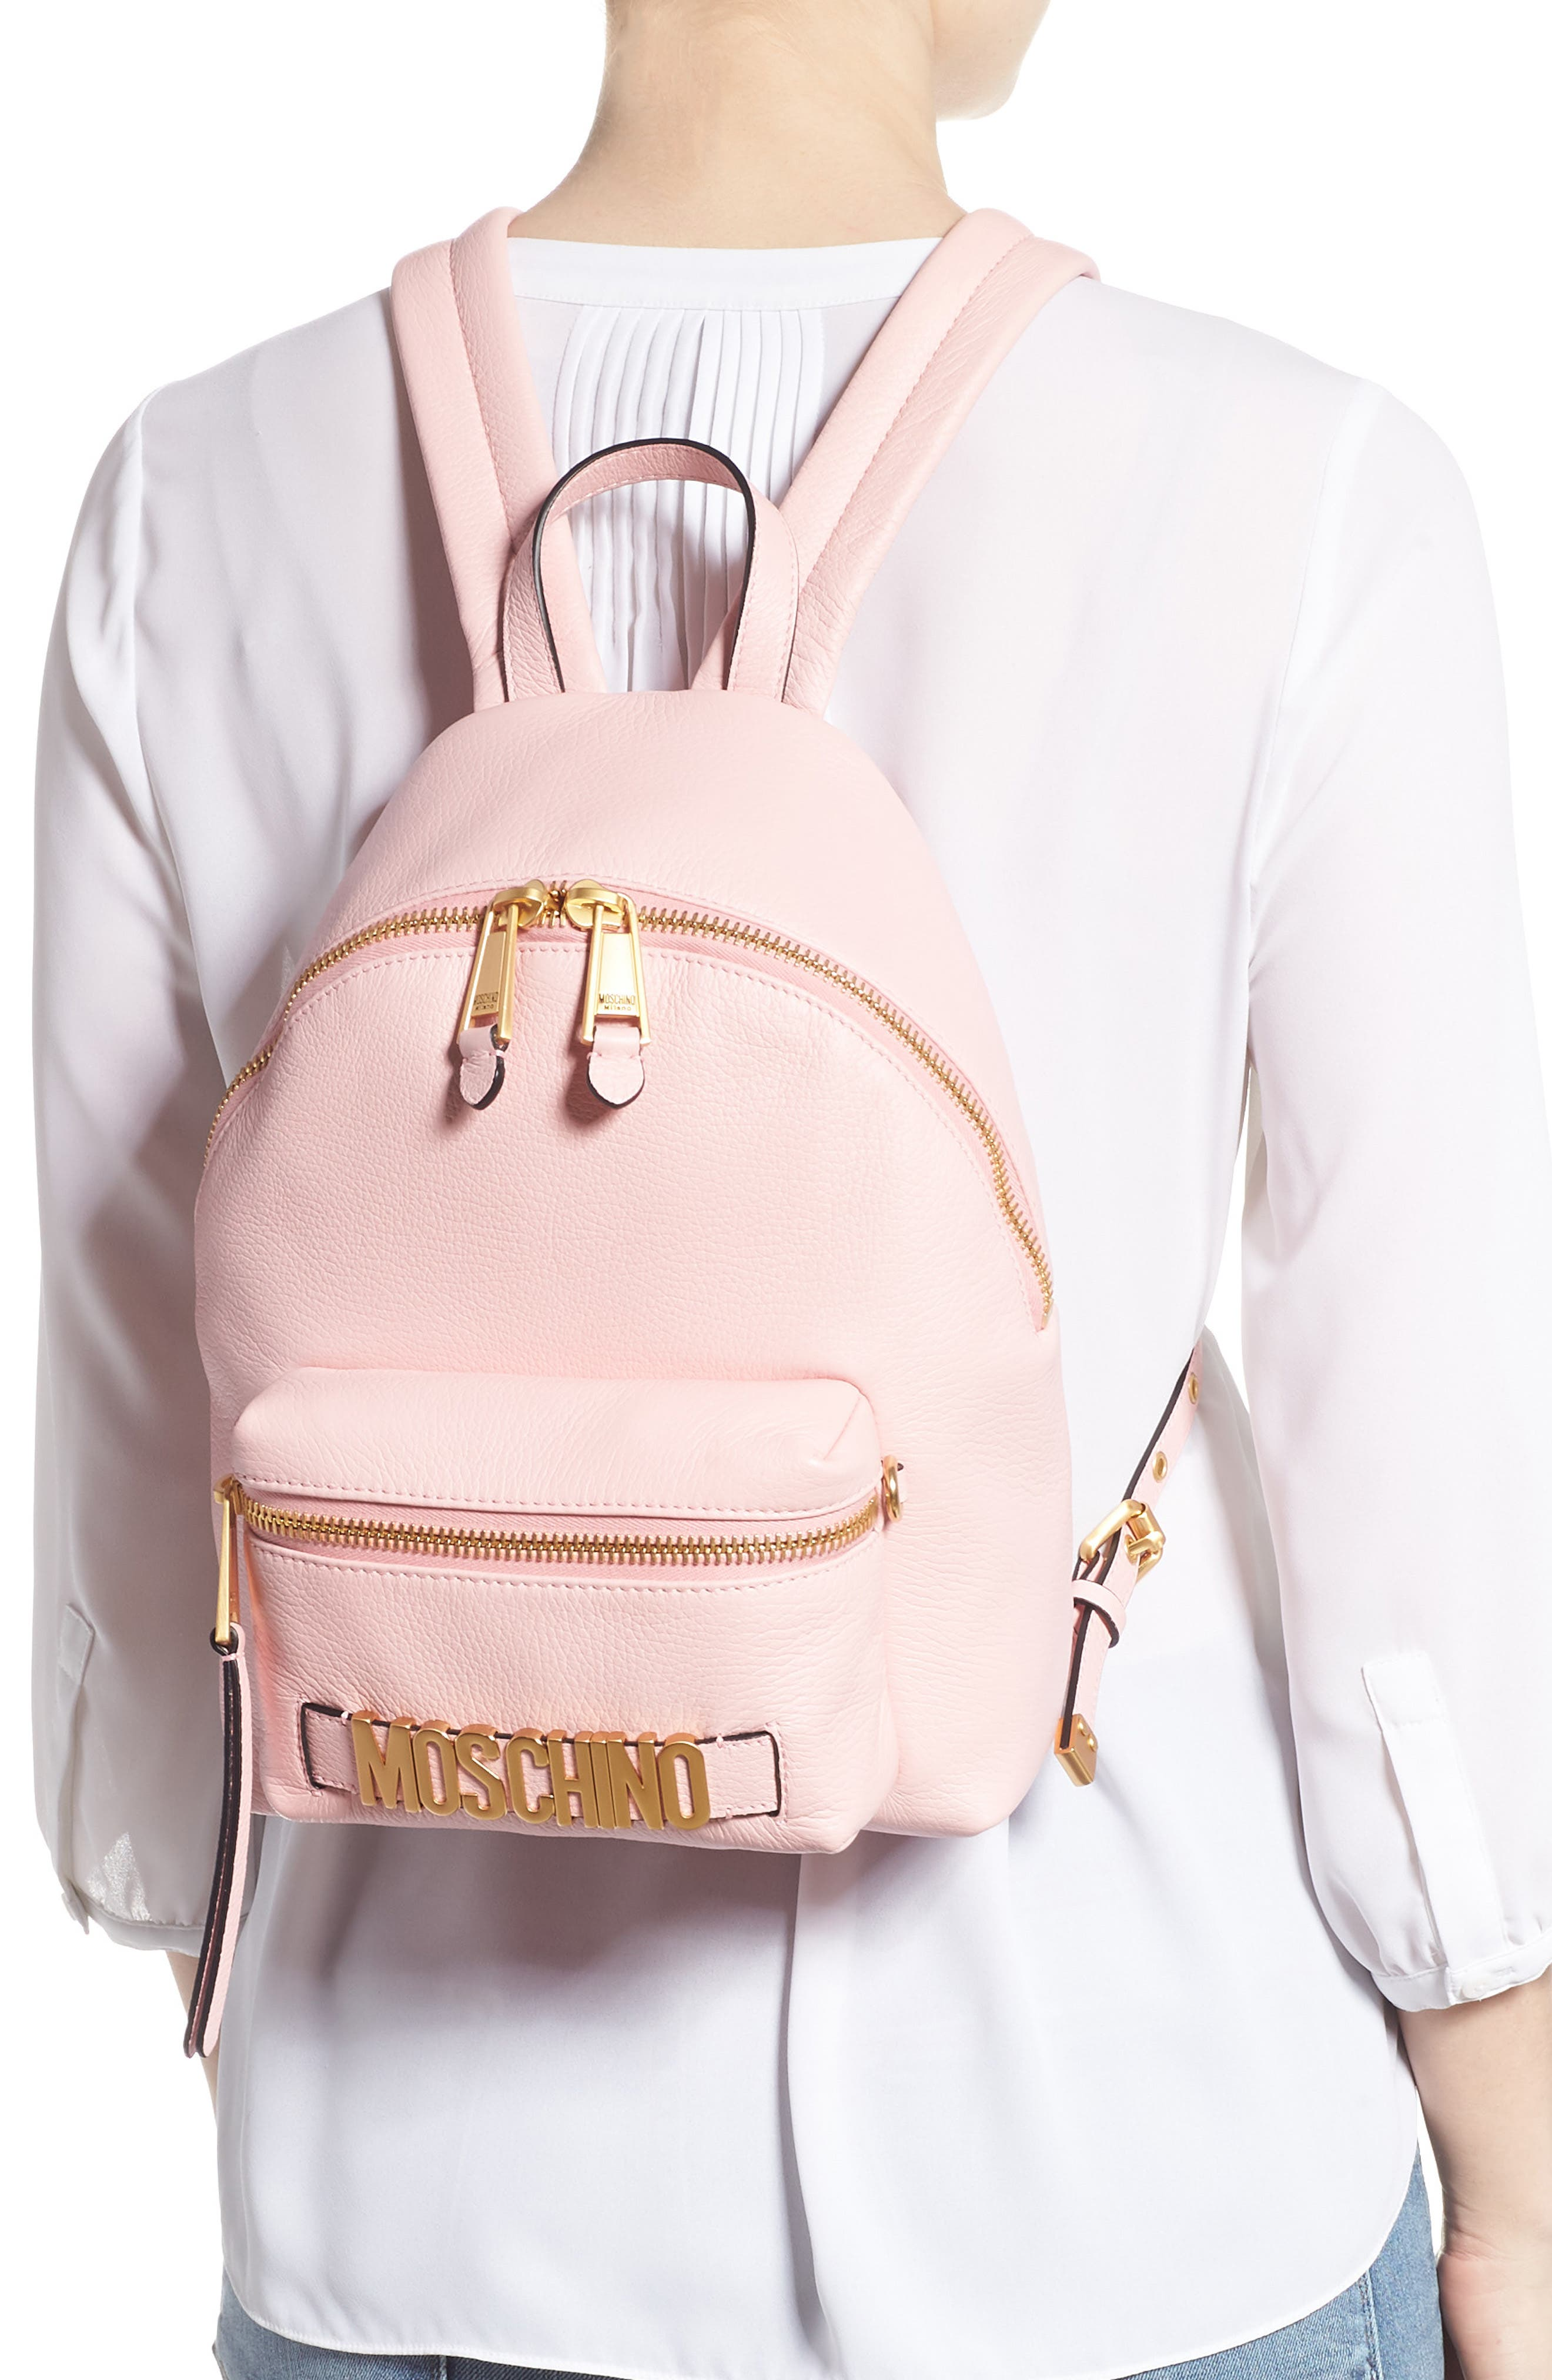 MOSCHINO,                             Logo Leather Backpack,                             Alternate thumbnail 2, color,                             PINK